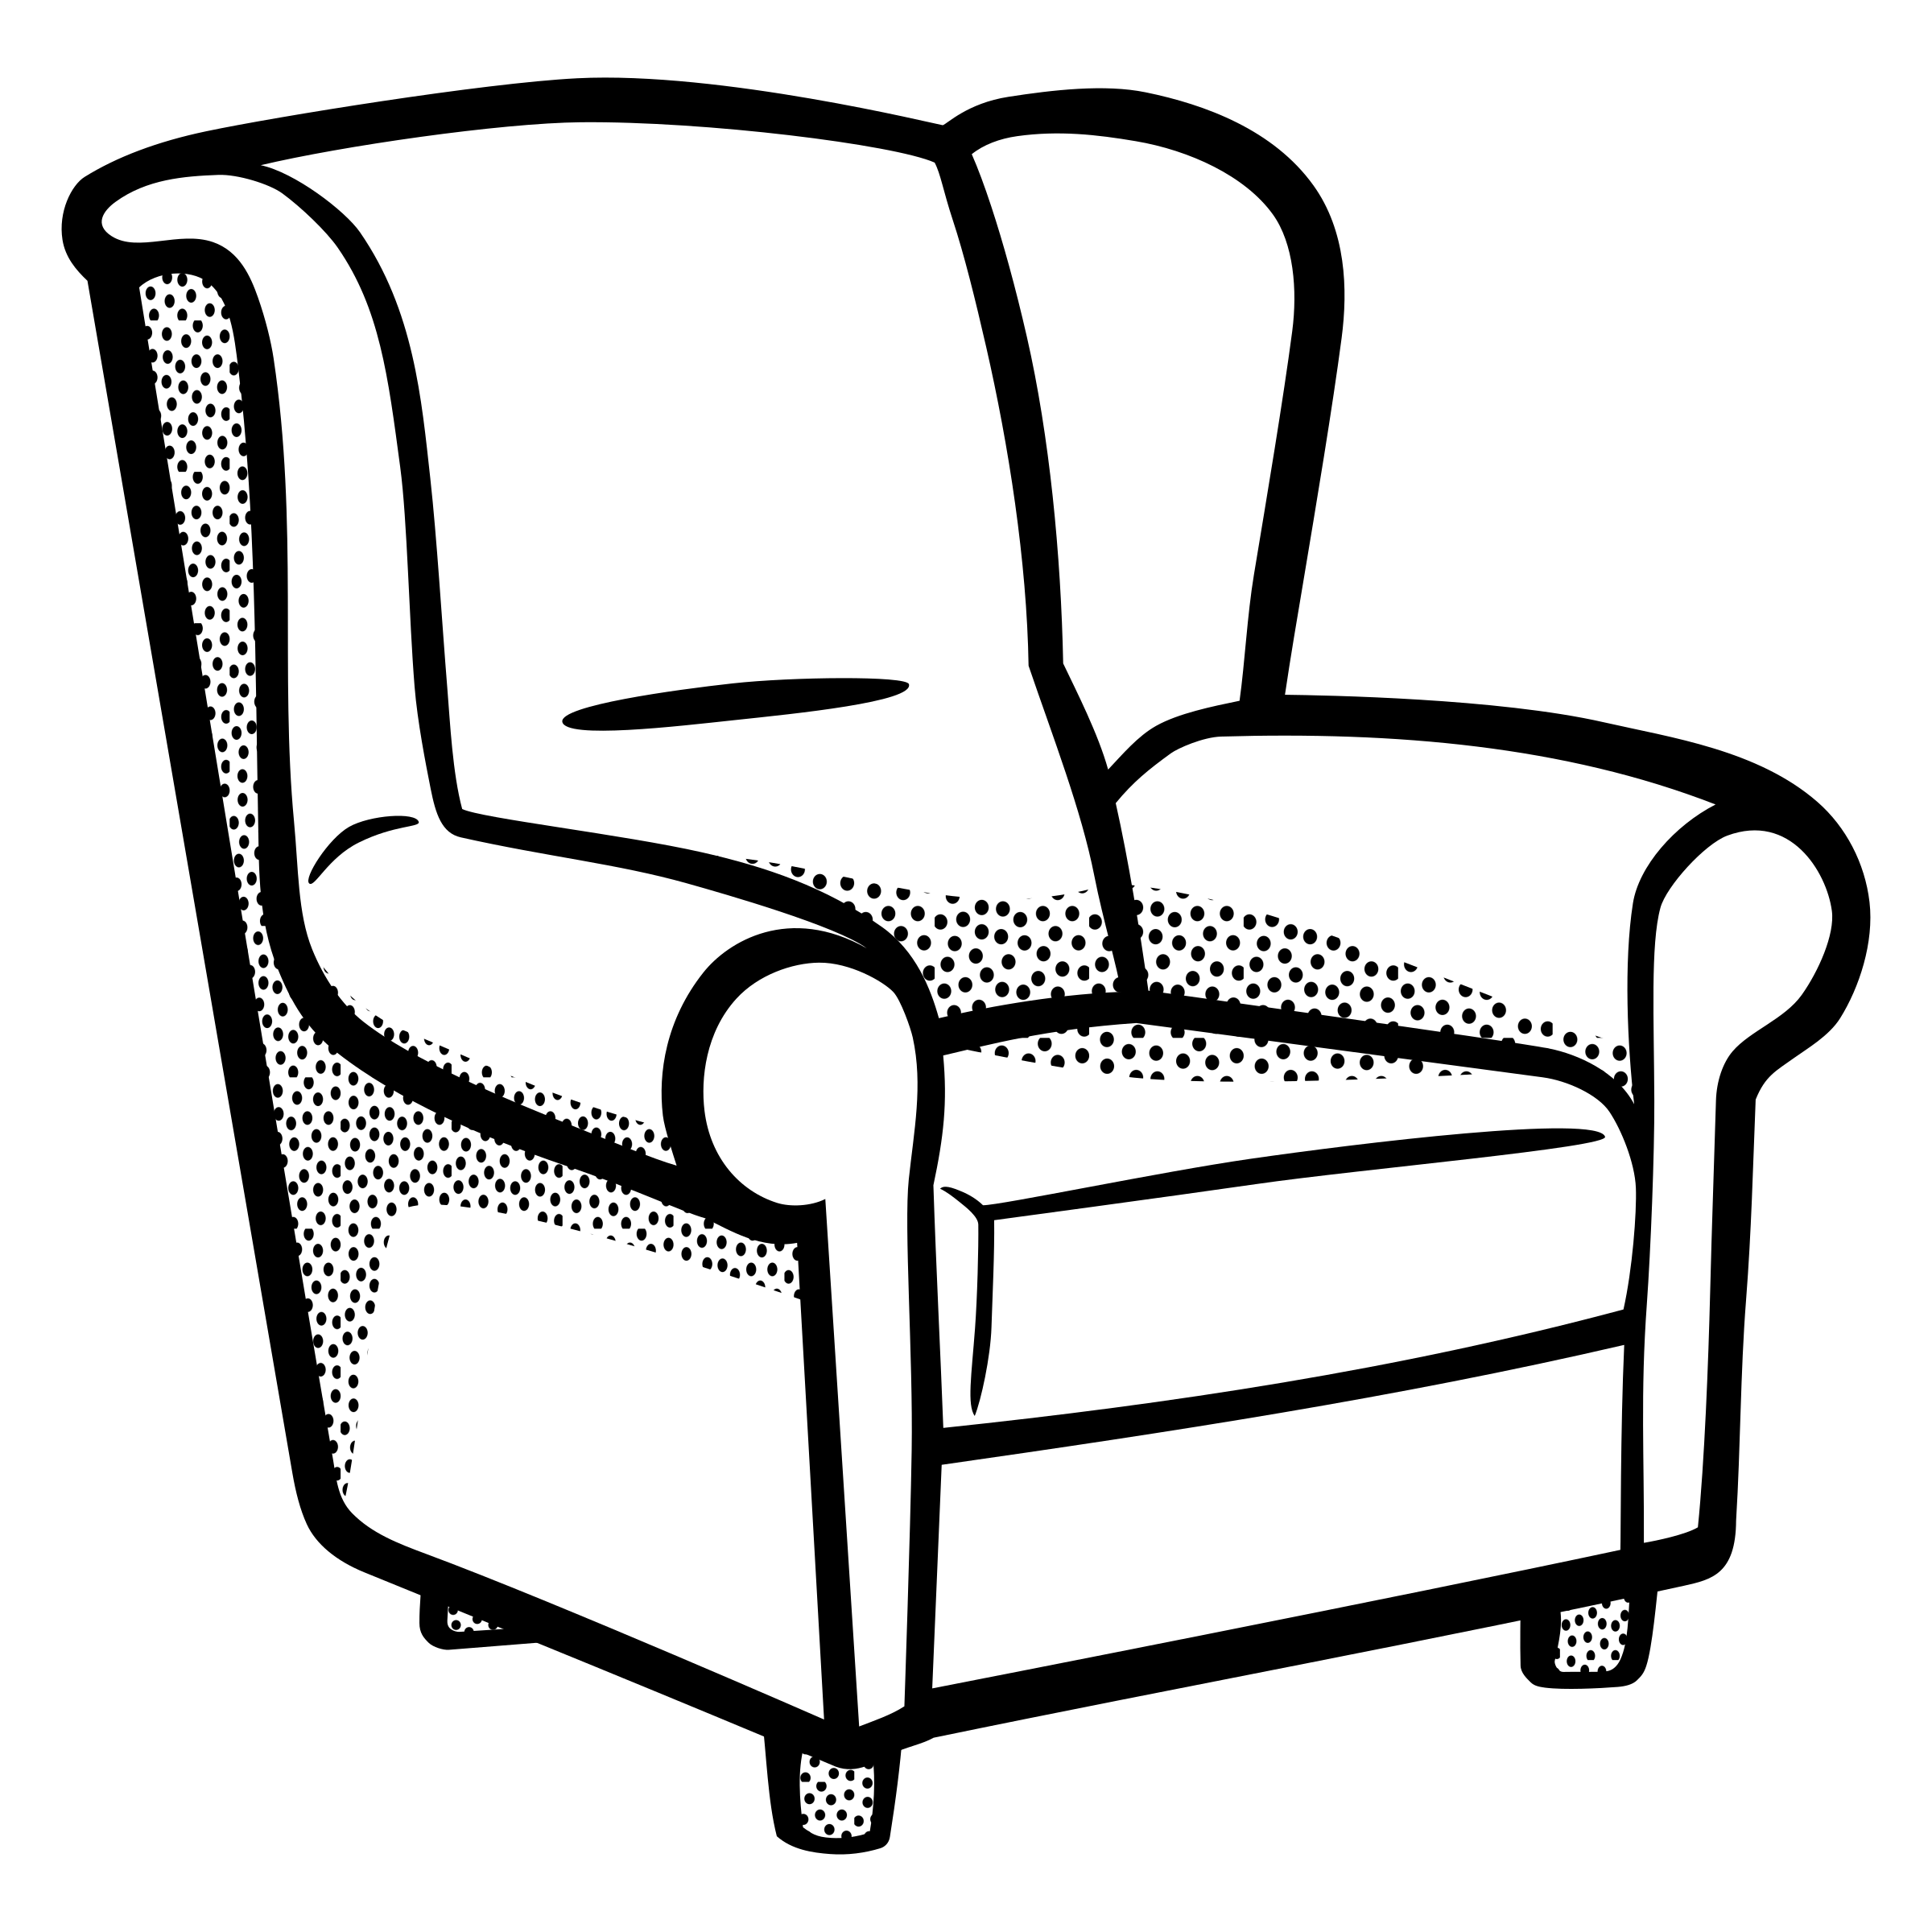 couch drawing png